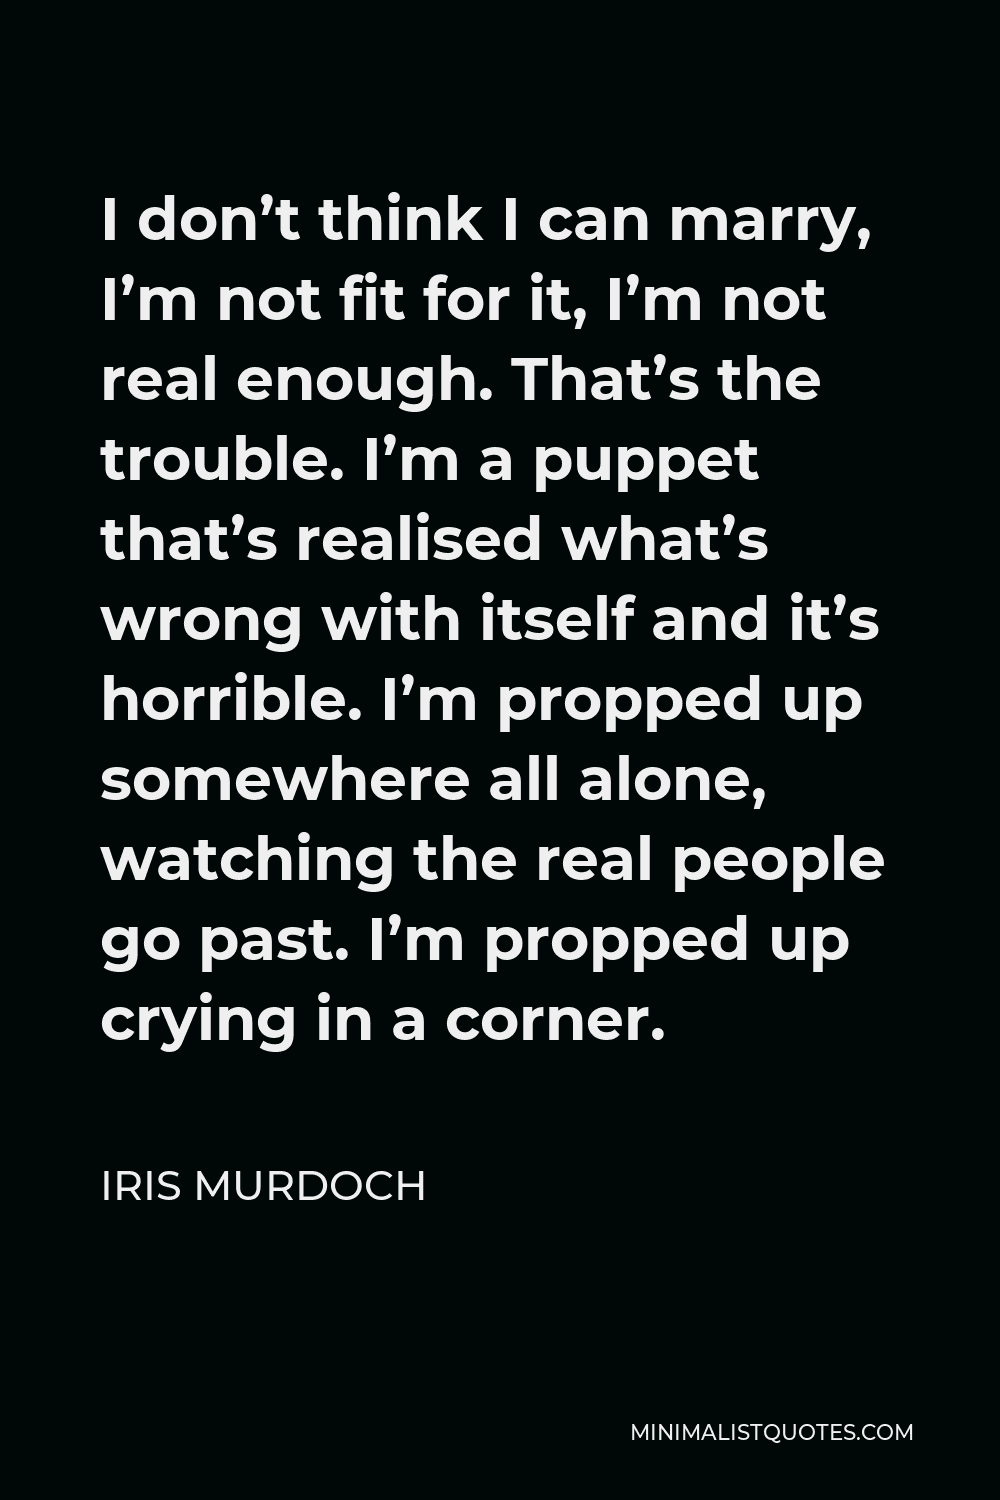 Iris Murdoch Quote - I don't think I can marry, I'm not fit for it, I'm not real enough. That's the trouble. I'm a puppet that's realised what's wrong with itself and it's horrible. I'm propped up somewhere all alone, watching the real people go past. I'm propped up crying in a corner.